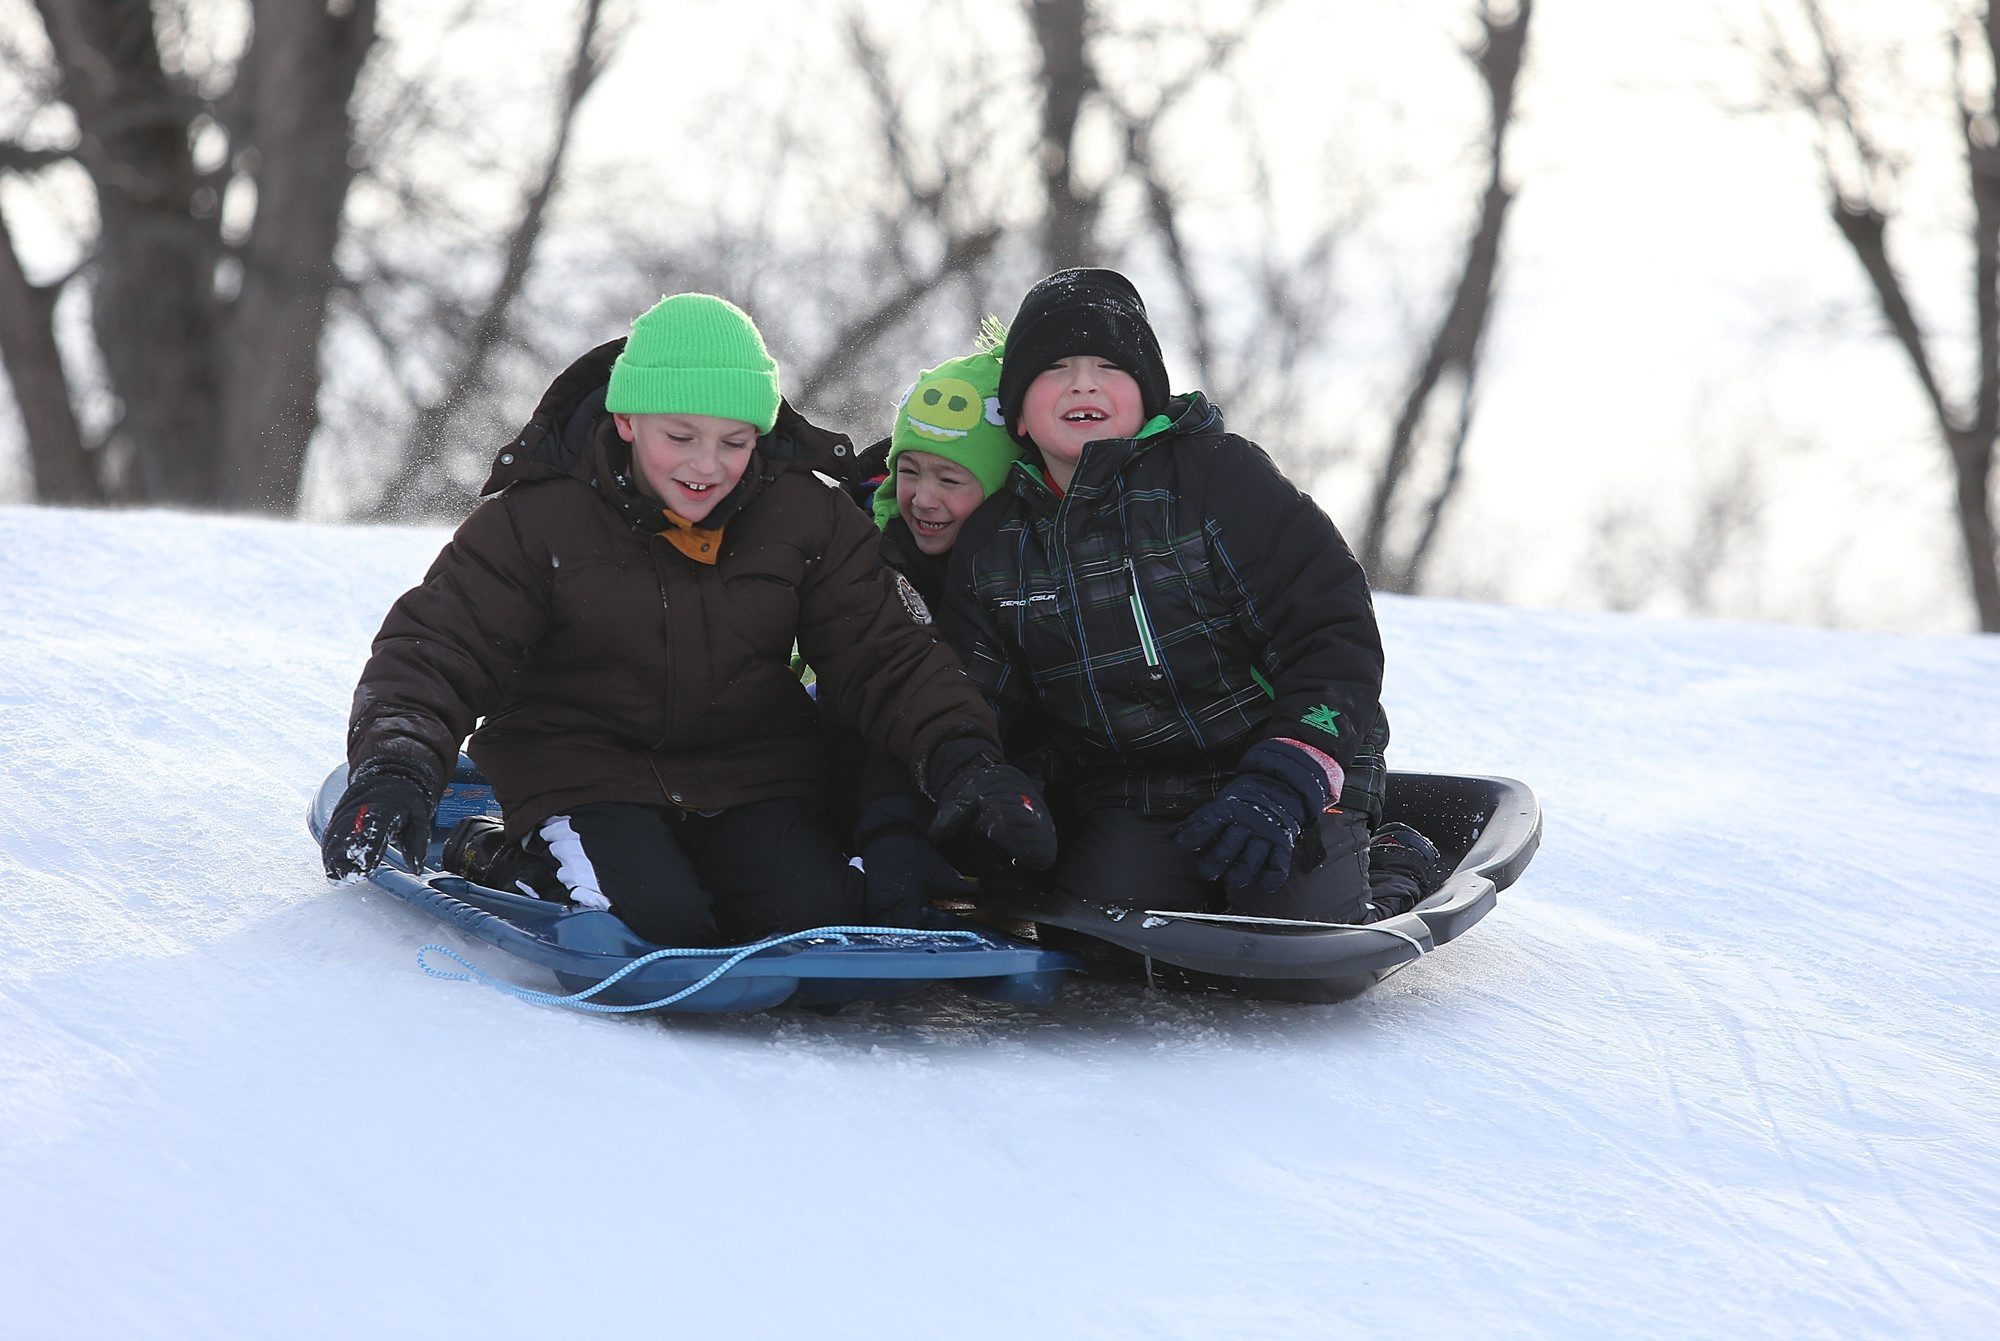 Sledders – from left, Andrew Roland, 9; Miguel Flores, 5; and Robbie Flores, 8 – enjoy hill at Ellicott Creek Park in Town of Tonawanda on Presidents Day holiday off from school.